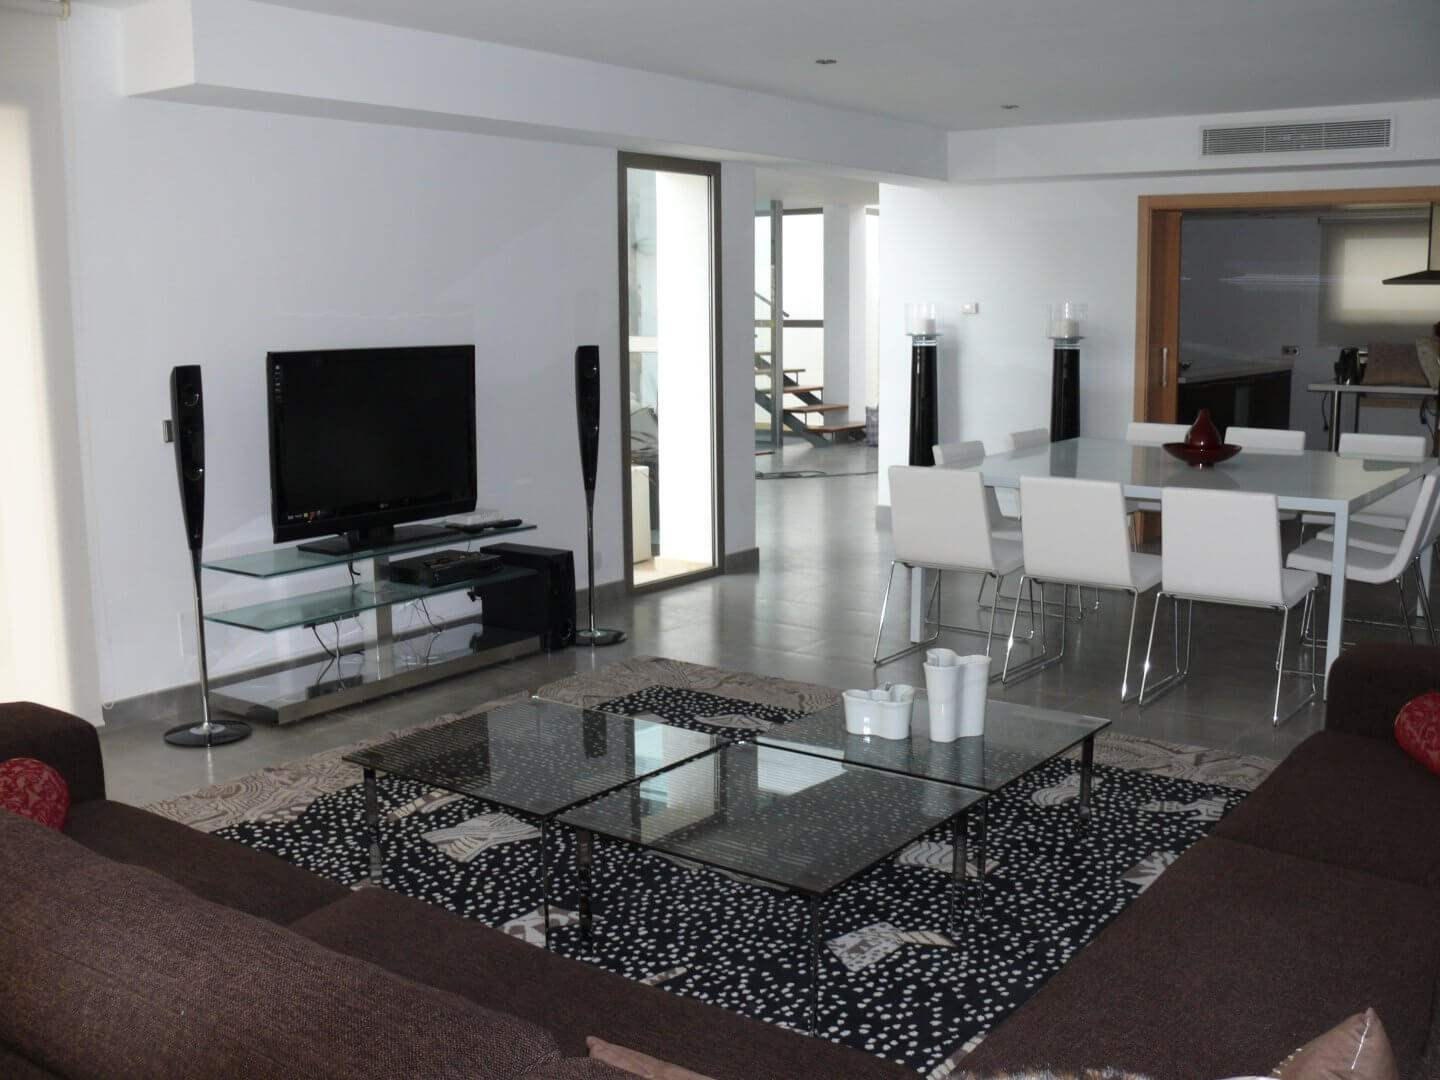 Casa Pitiusa, 5 Bedroom rate, 5 bedroom villa in Mahon, San Luis & South East, Menorca Photo #3